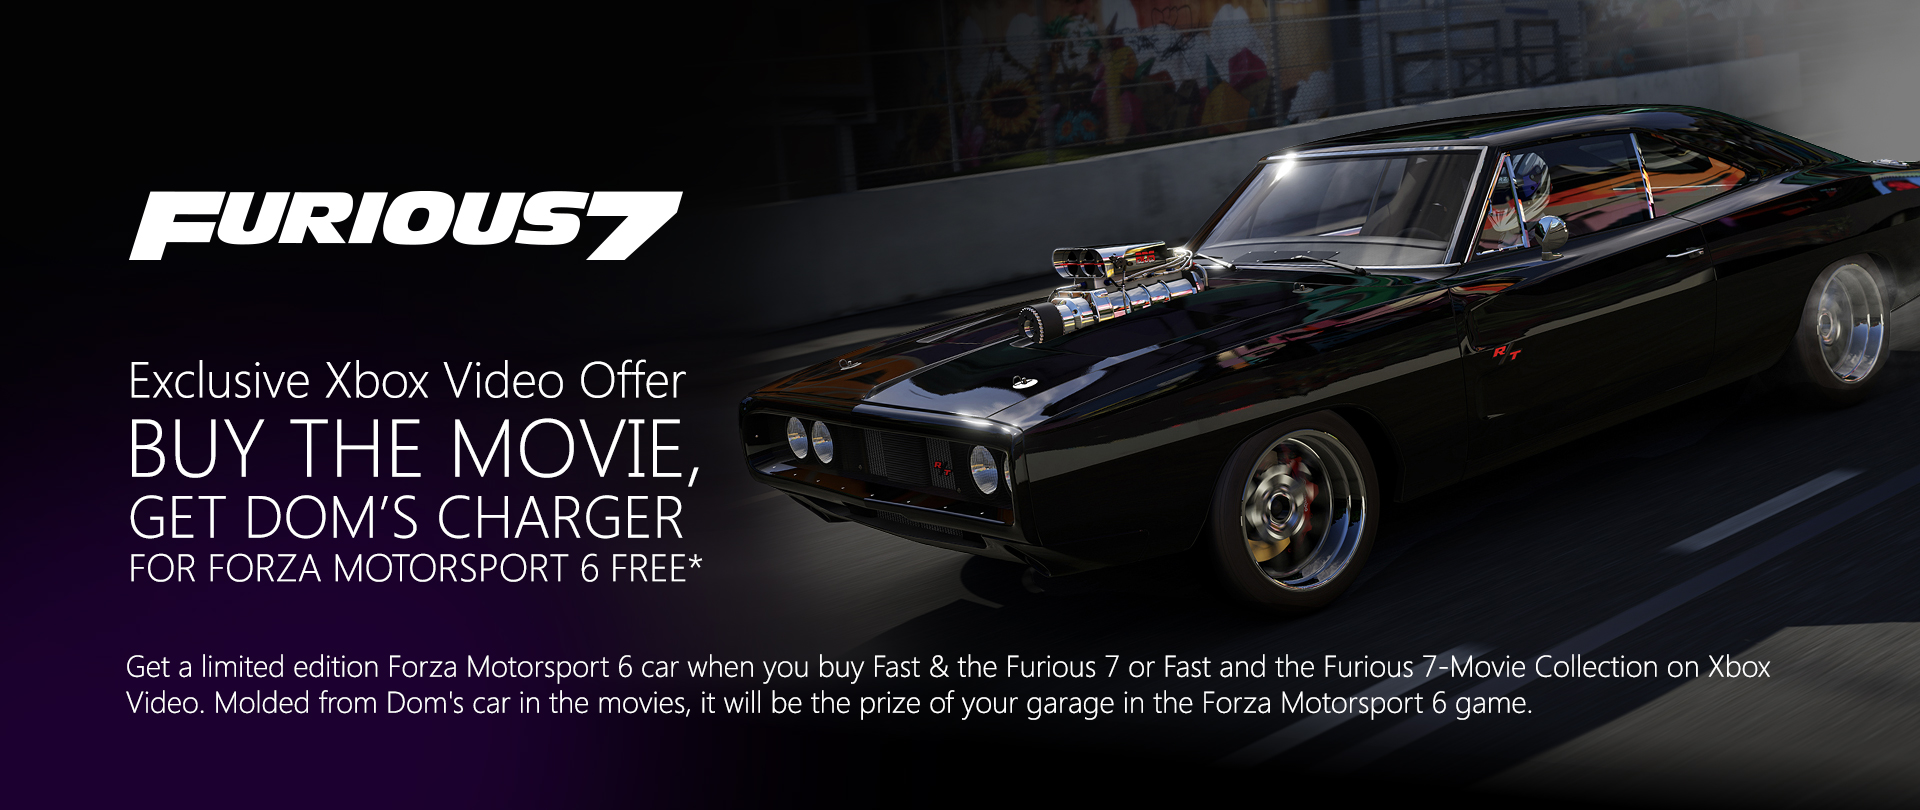 dom 39 s charger xbox video offer page 2 forza 6. Black Bedroom Furniture Sets. Home Design Ideas